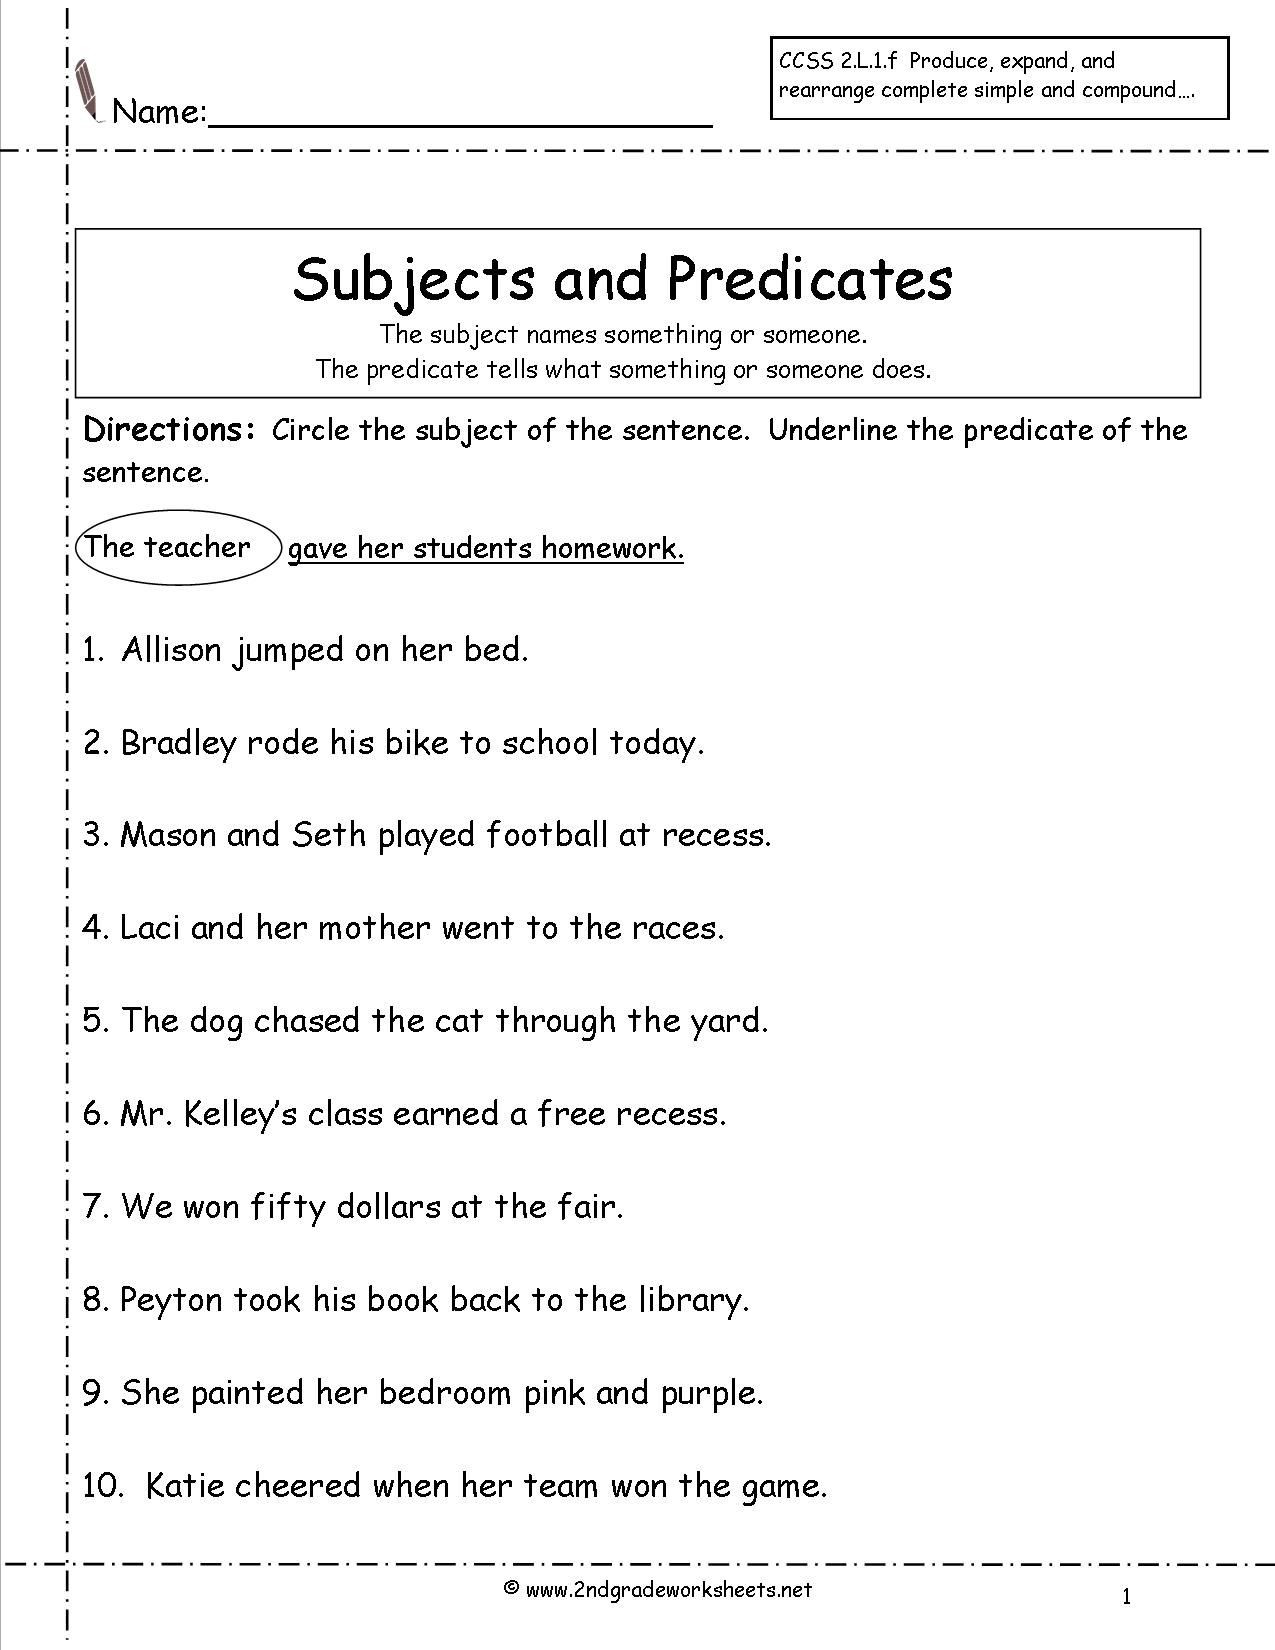 Subject Predicate Worksheet 2nd Grade Subject Predicate Worksheets 2nd Grade Google Search